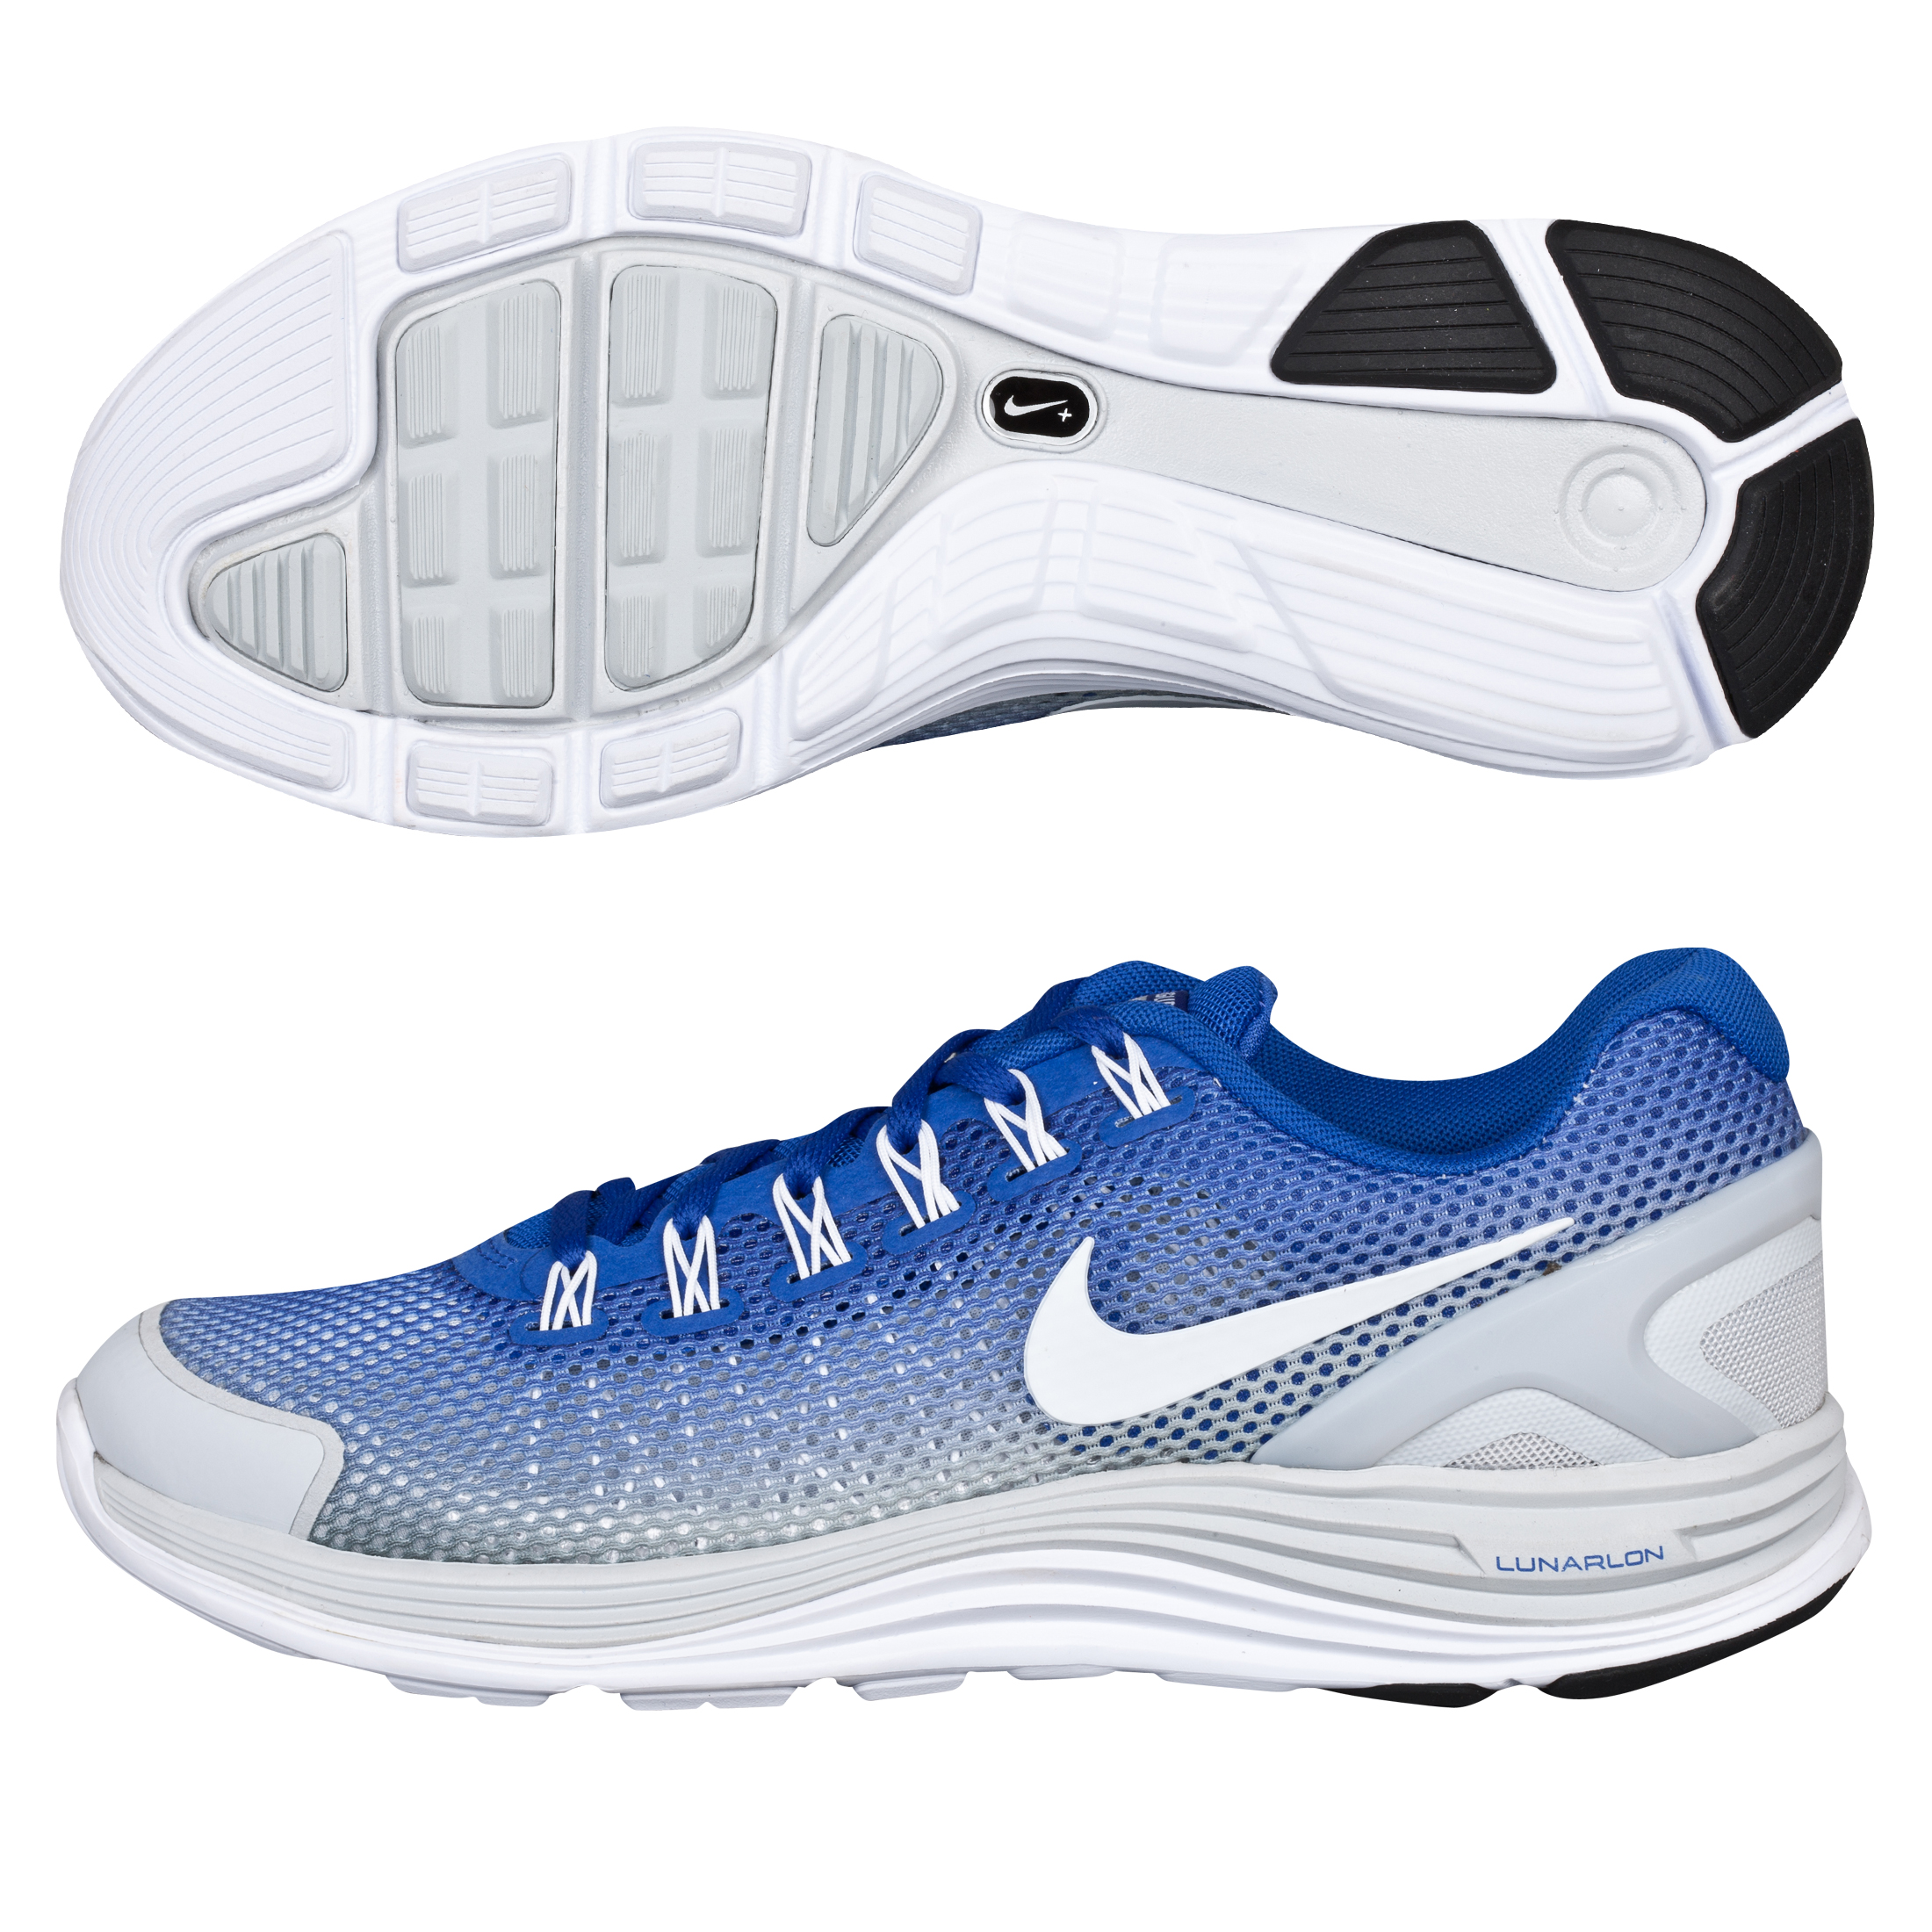 Nike Lunarglide+ 4 (Breathe) Trainer - Hyper Blue/ White Pure Platinum